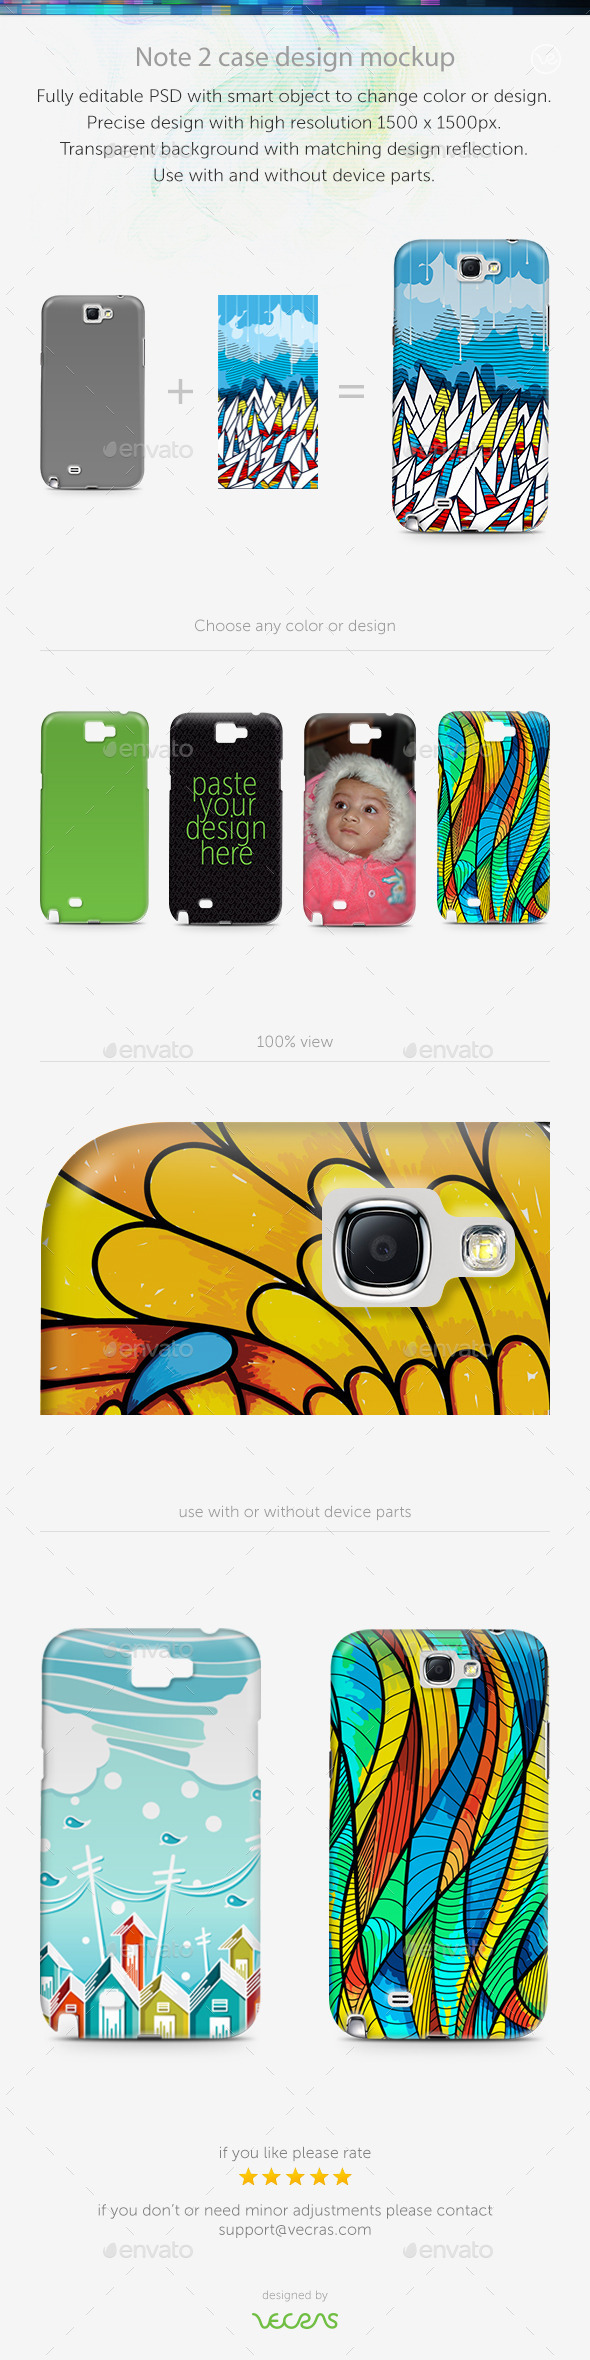 Note 2 Case Design Mockup